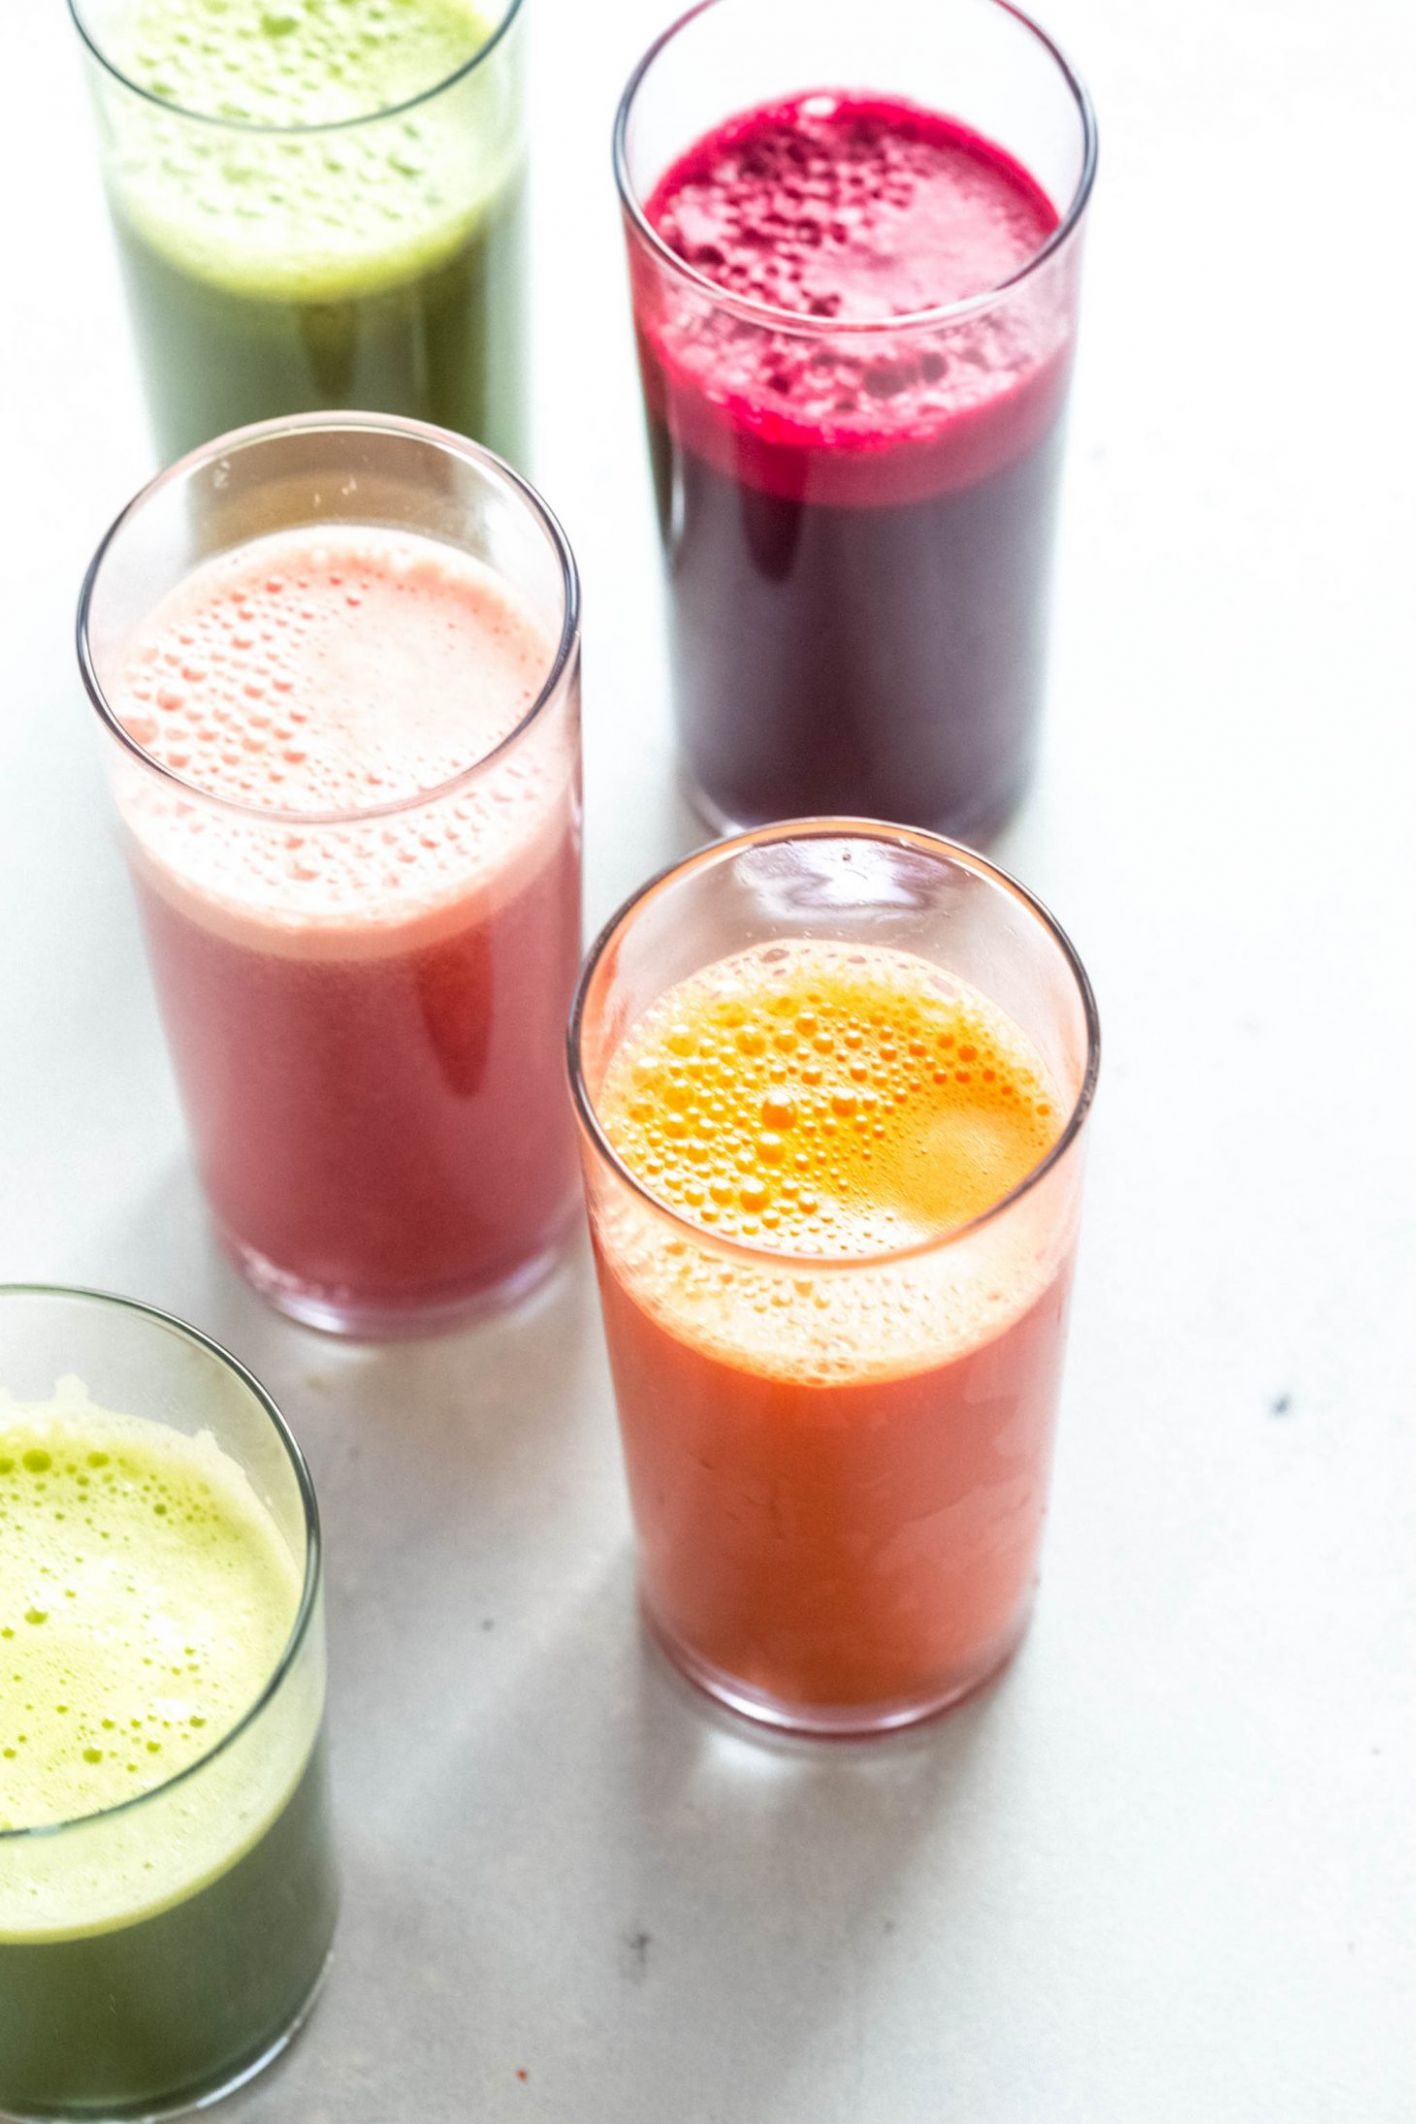 Healthy Juicing Recipes // Juice Cleanse | Platings + Pairings - Best Recipes For Weight Loss Juicing